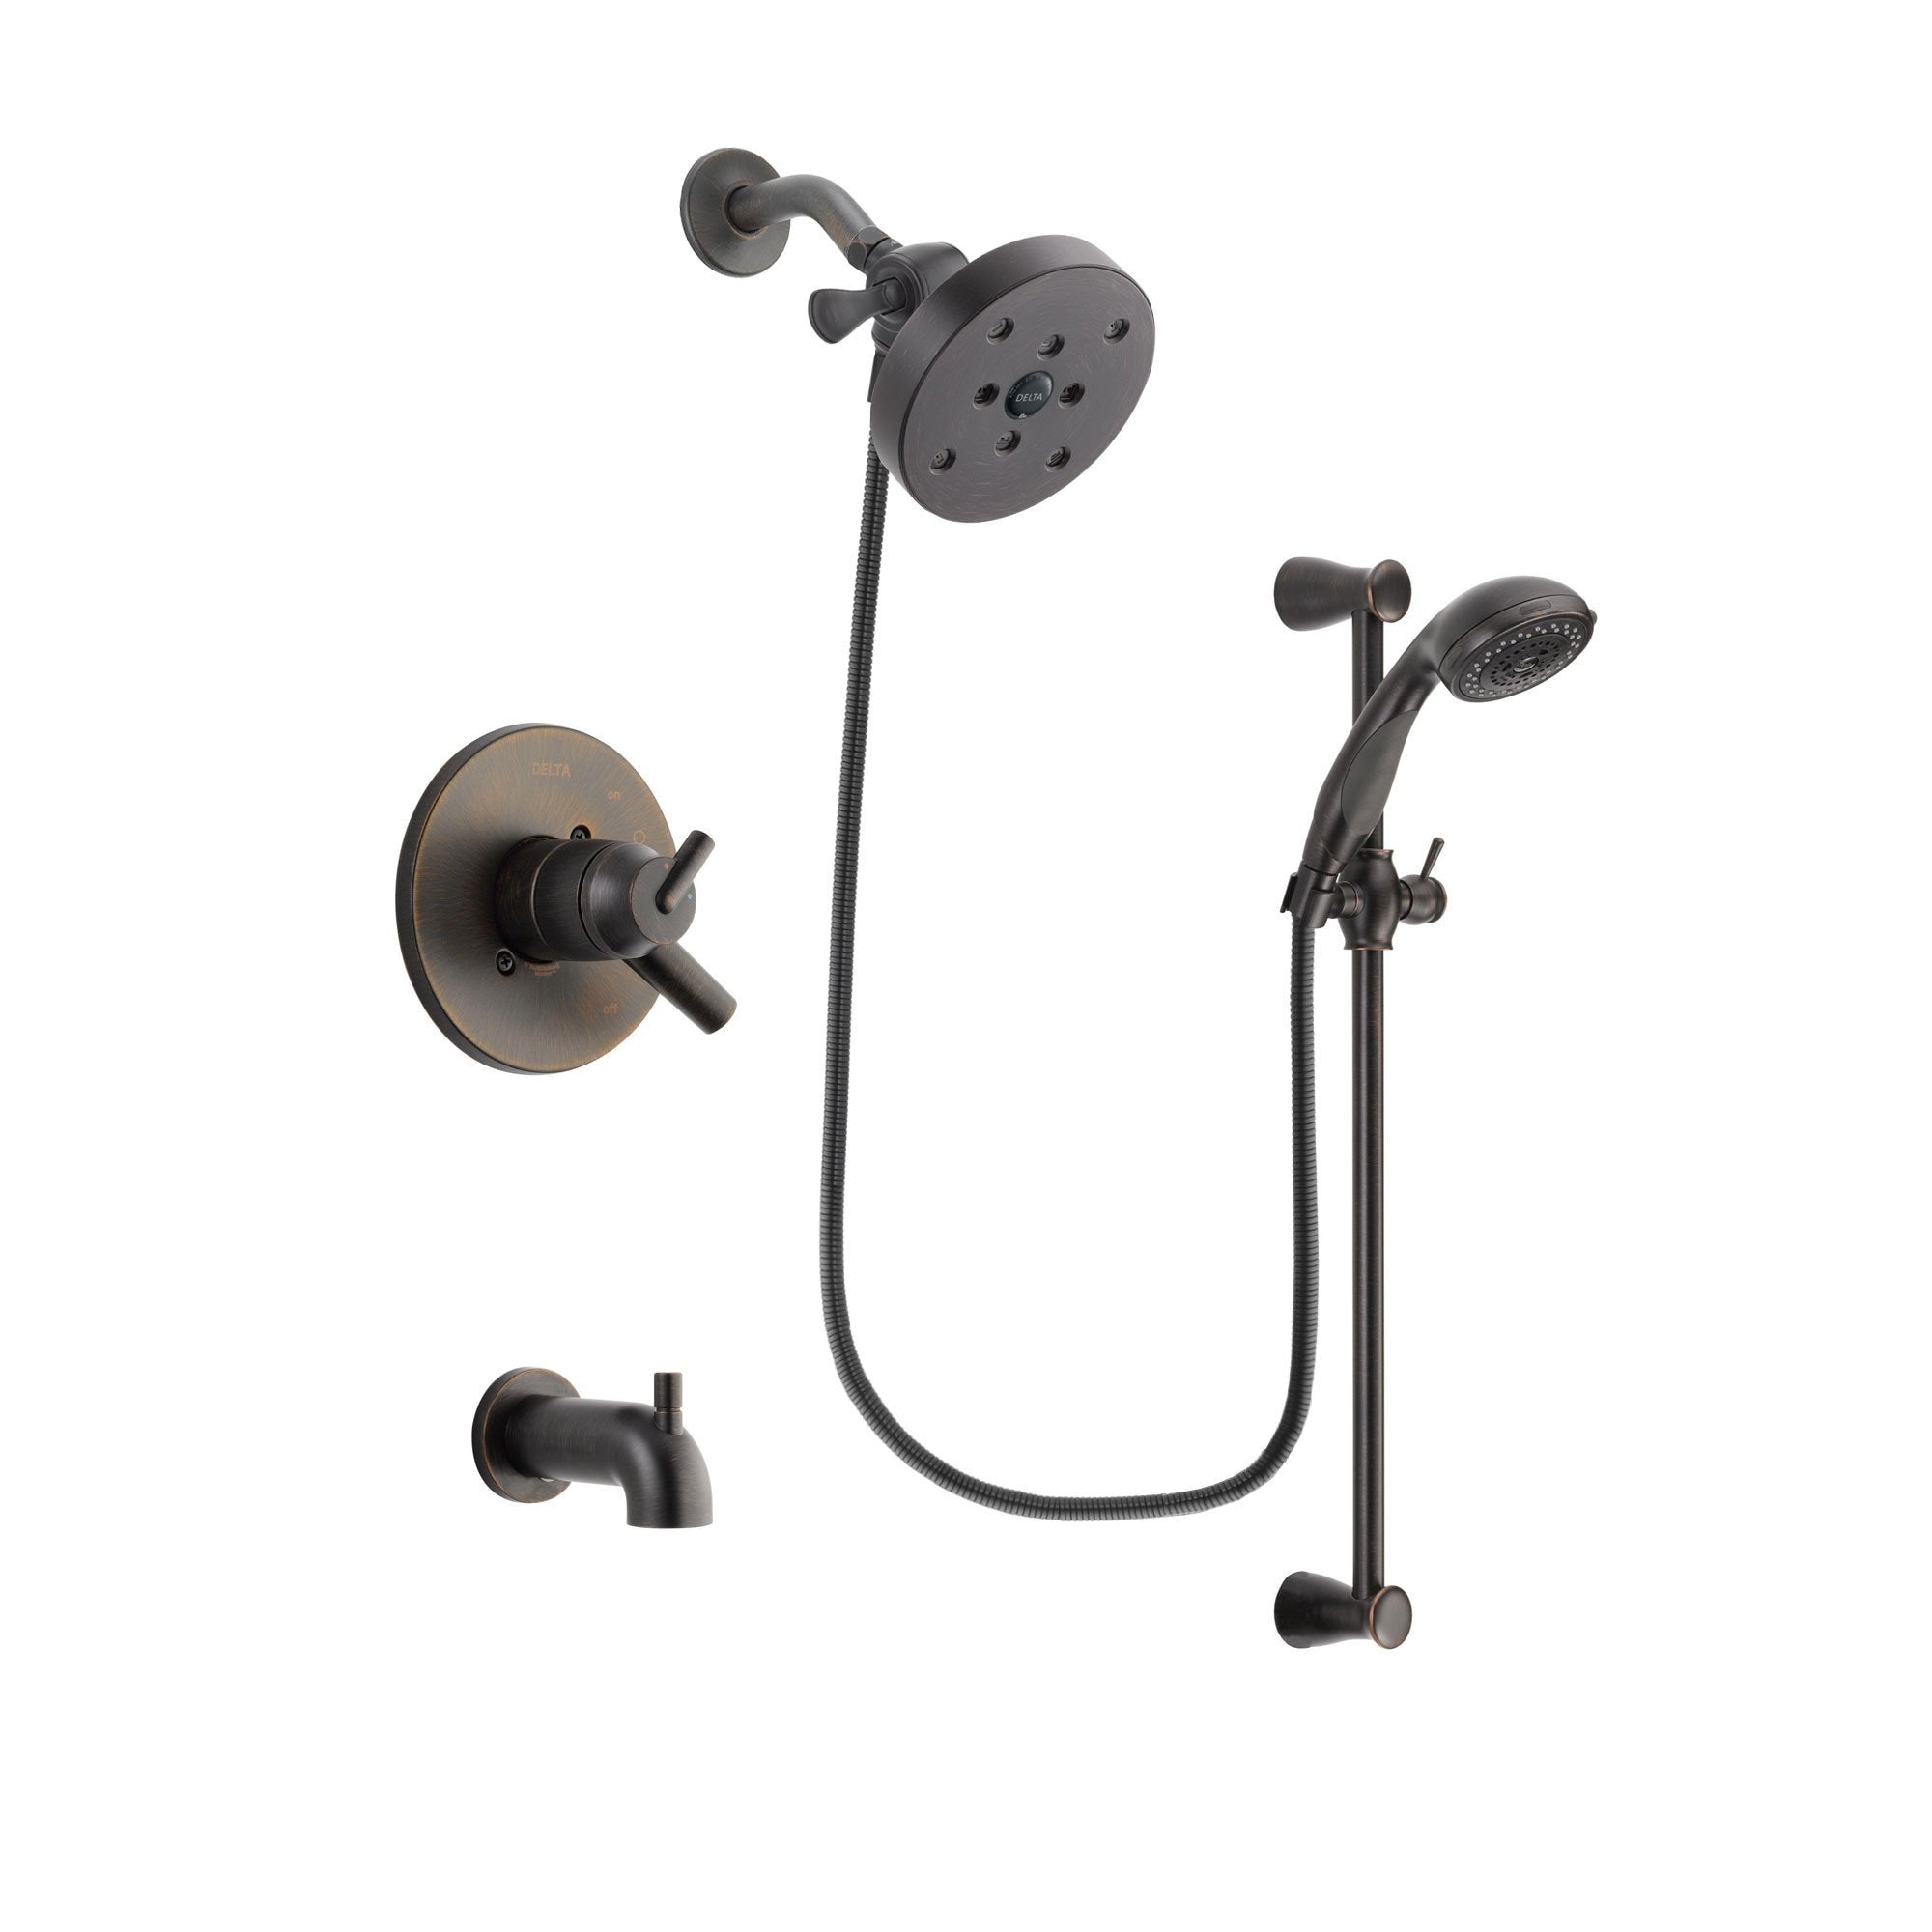 Delta Trinsic Venetian Bronze Tub and Shower System with Hand Shower DSP2731V